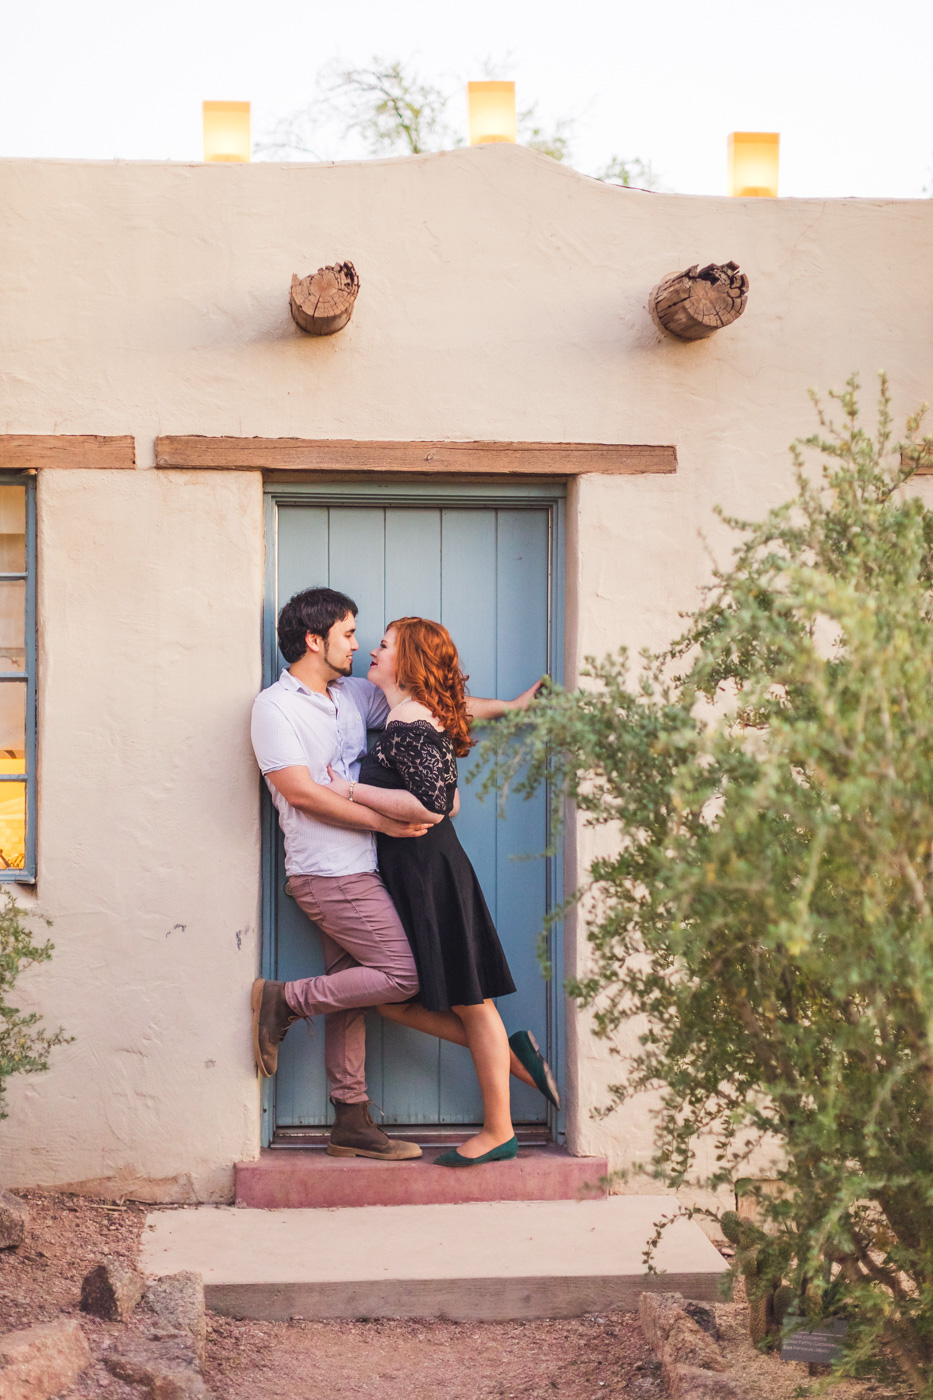 engagement-photography-with-couple-in-doorway